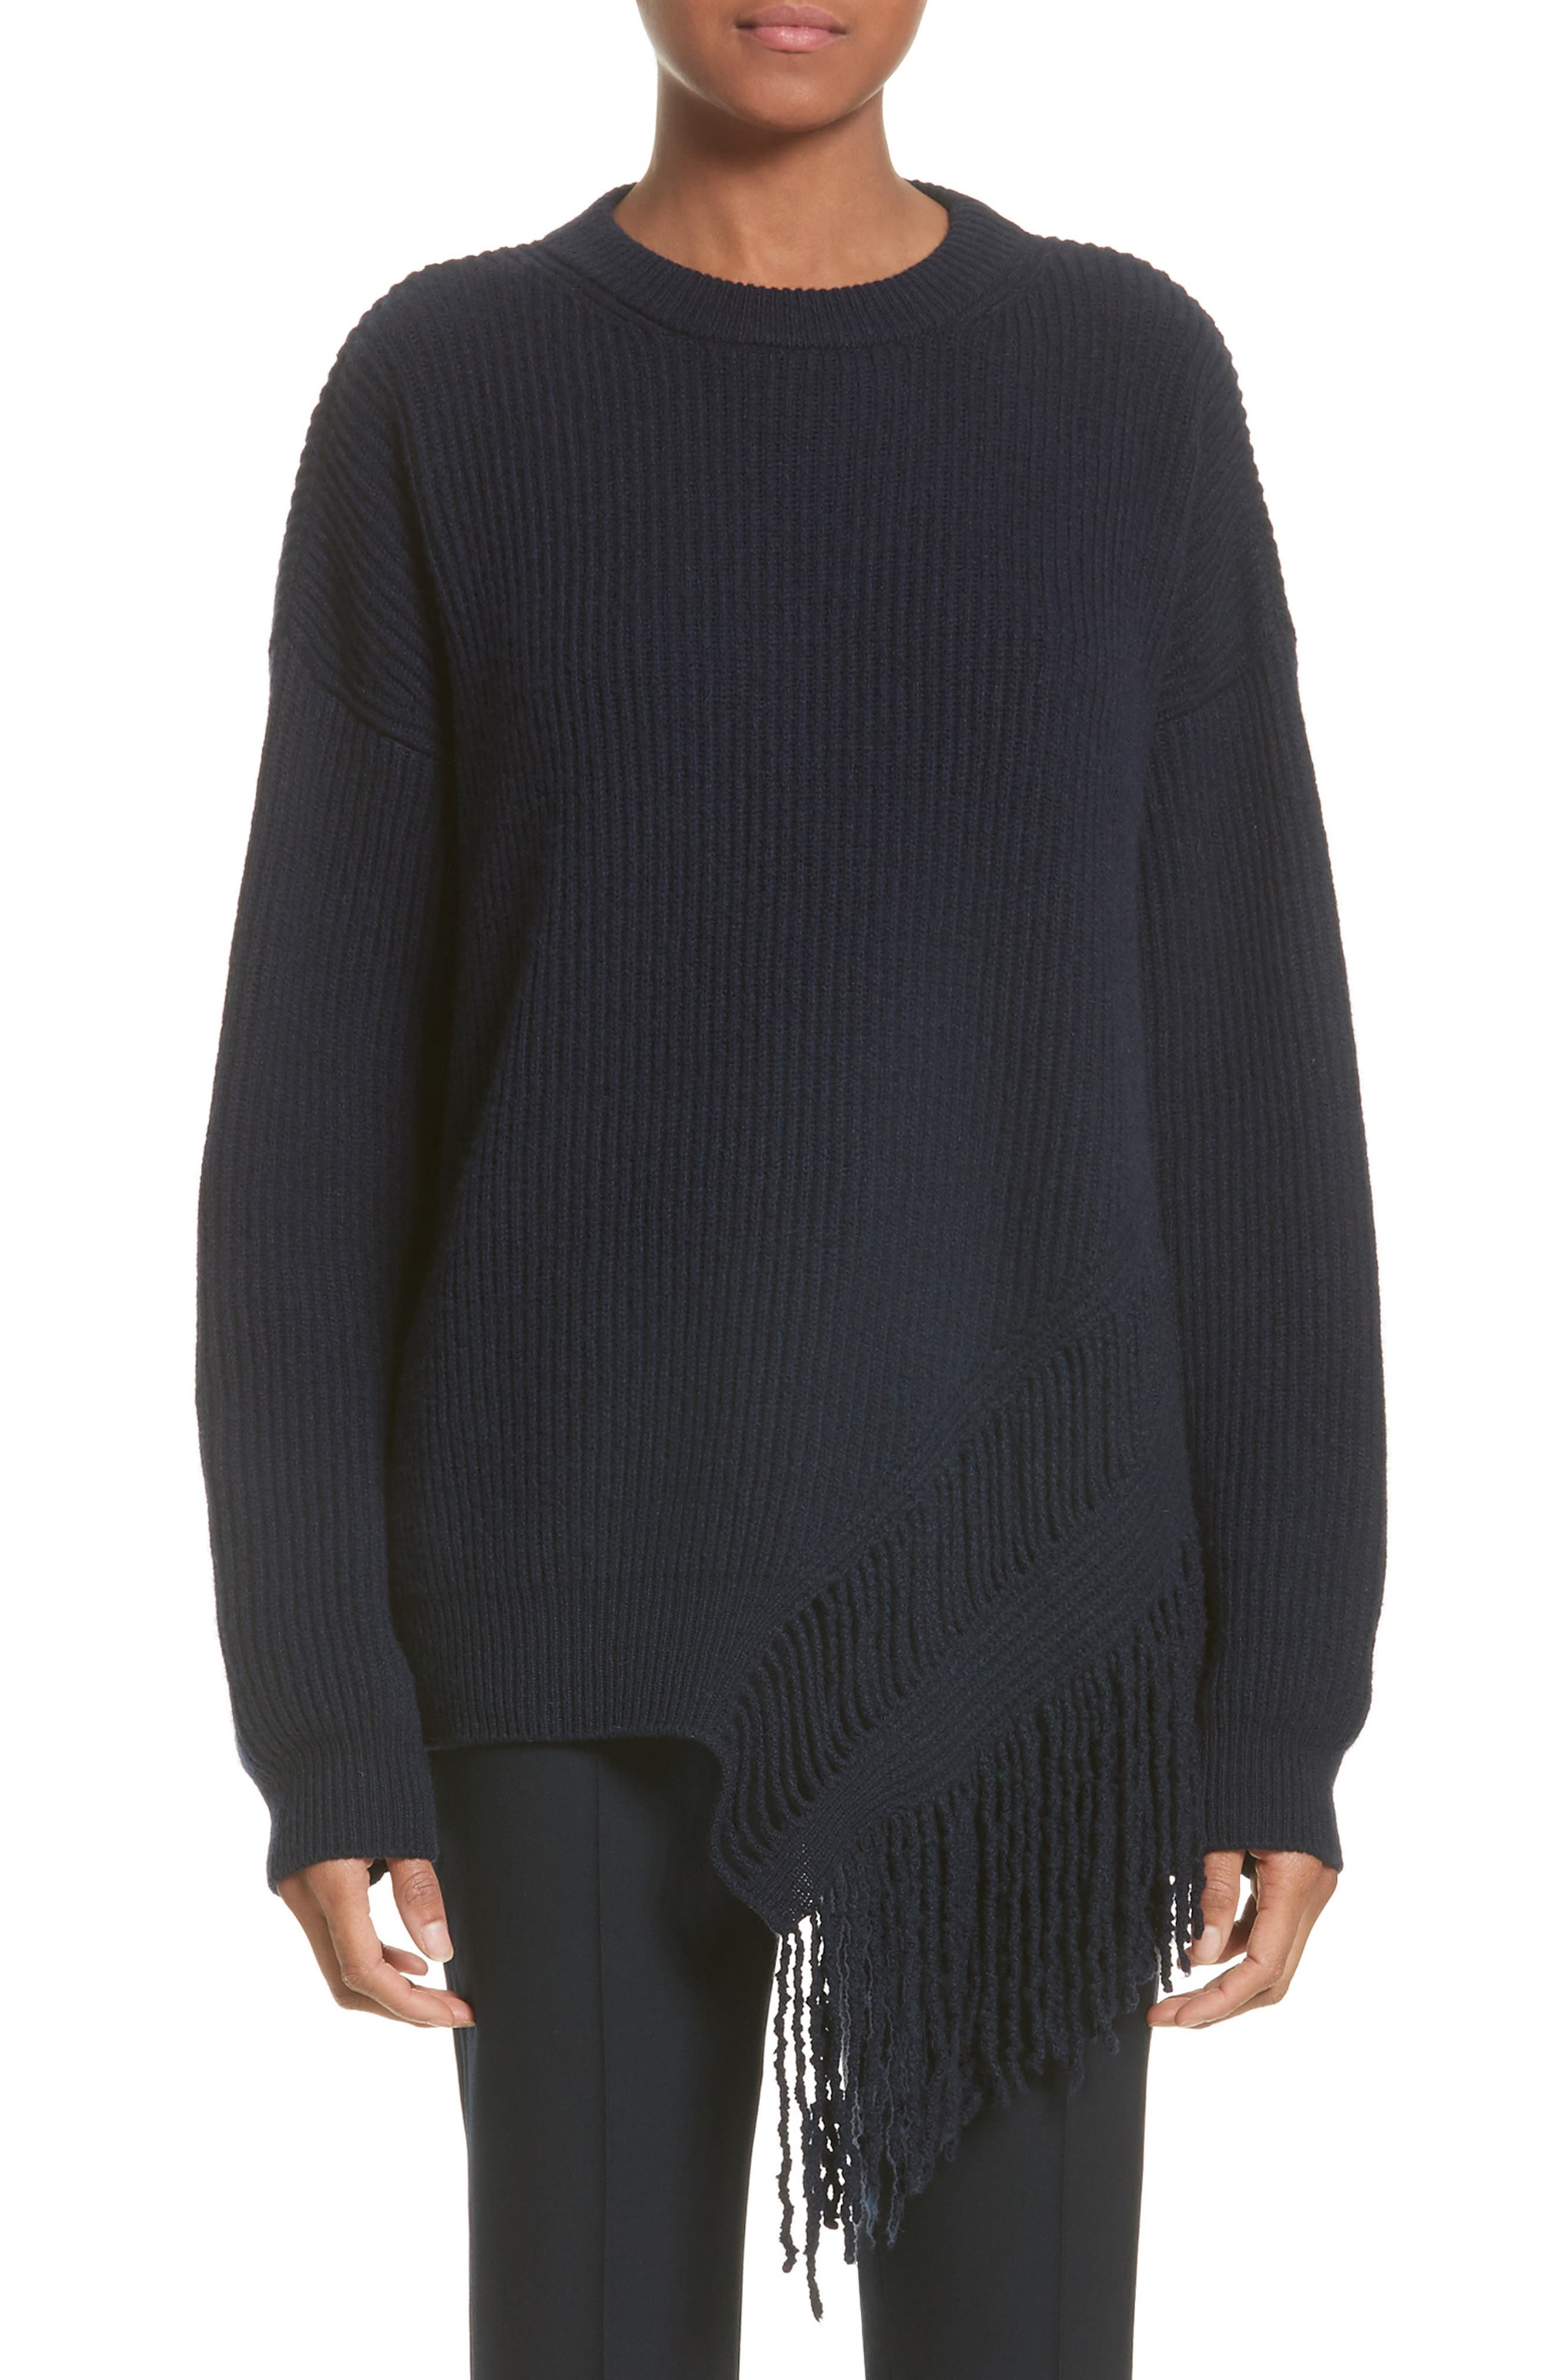 Cashmere & Wool Fringe Sweater,                             Main thumbnail 1, color,                             410